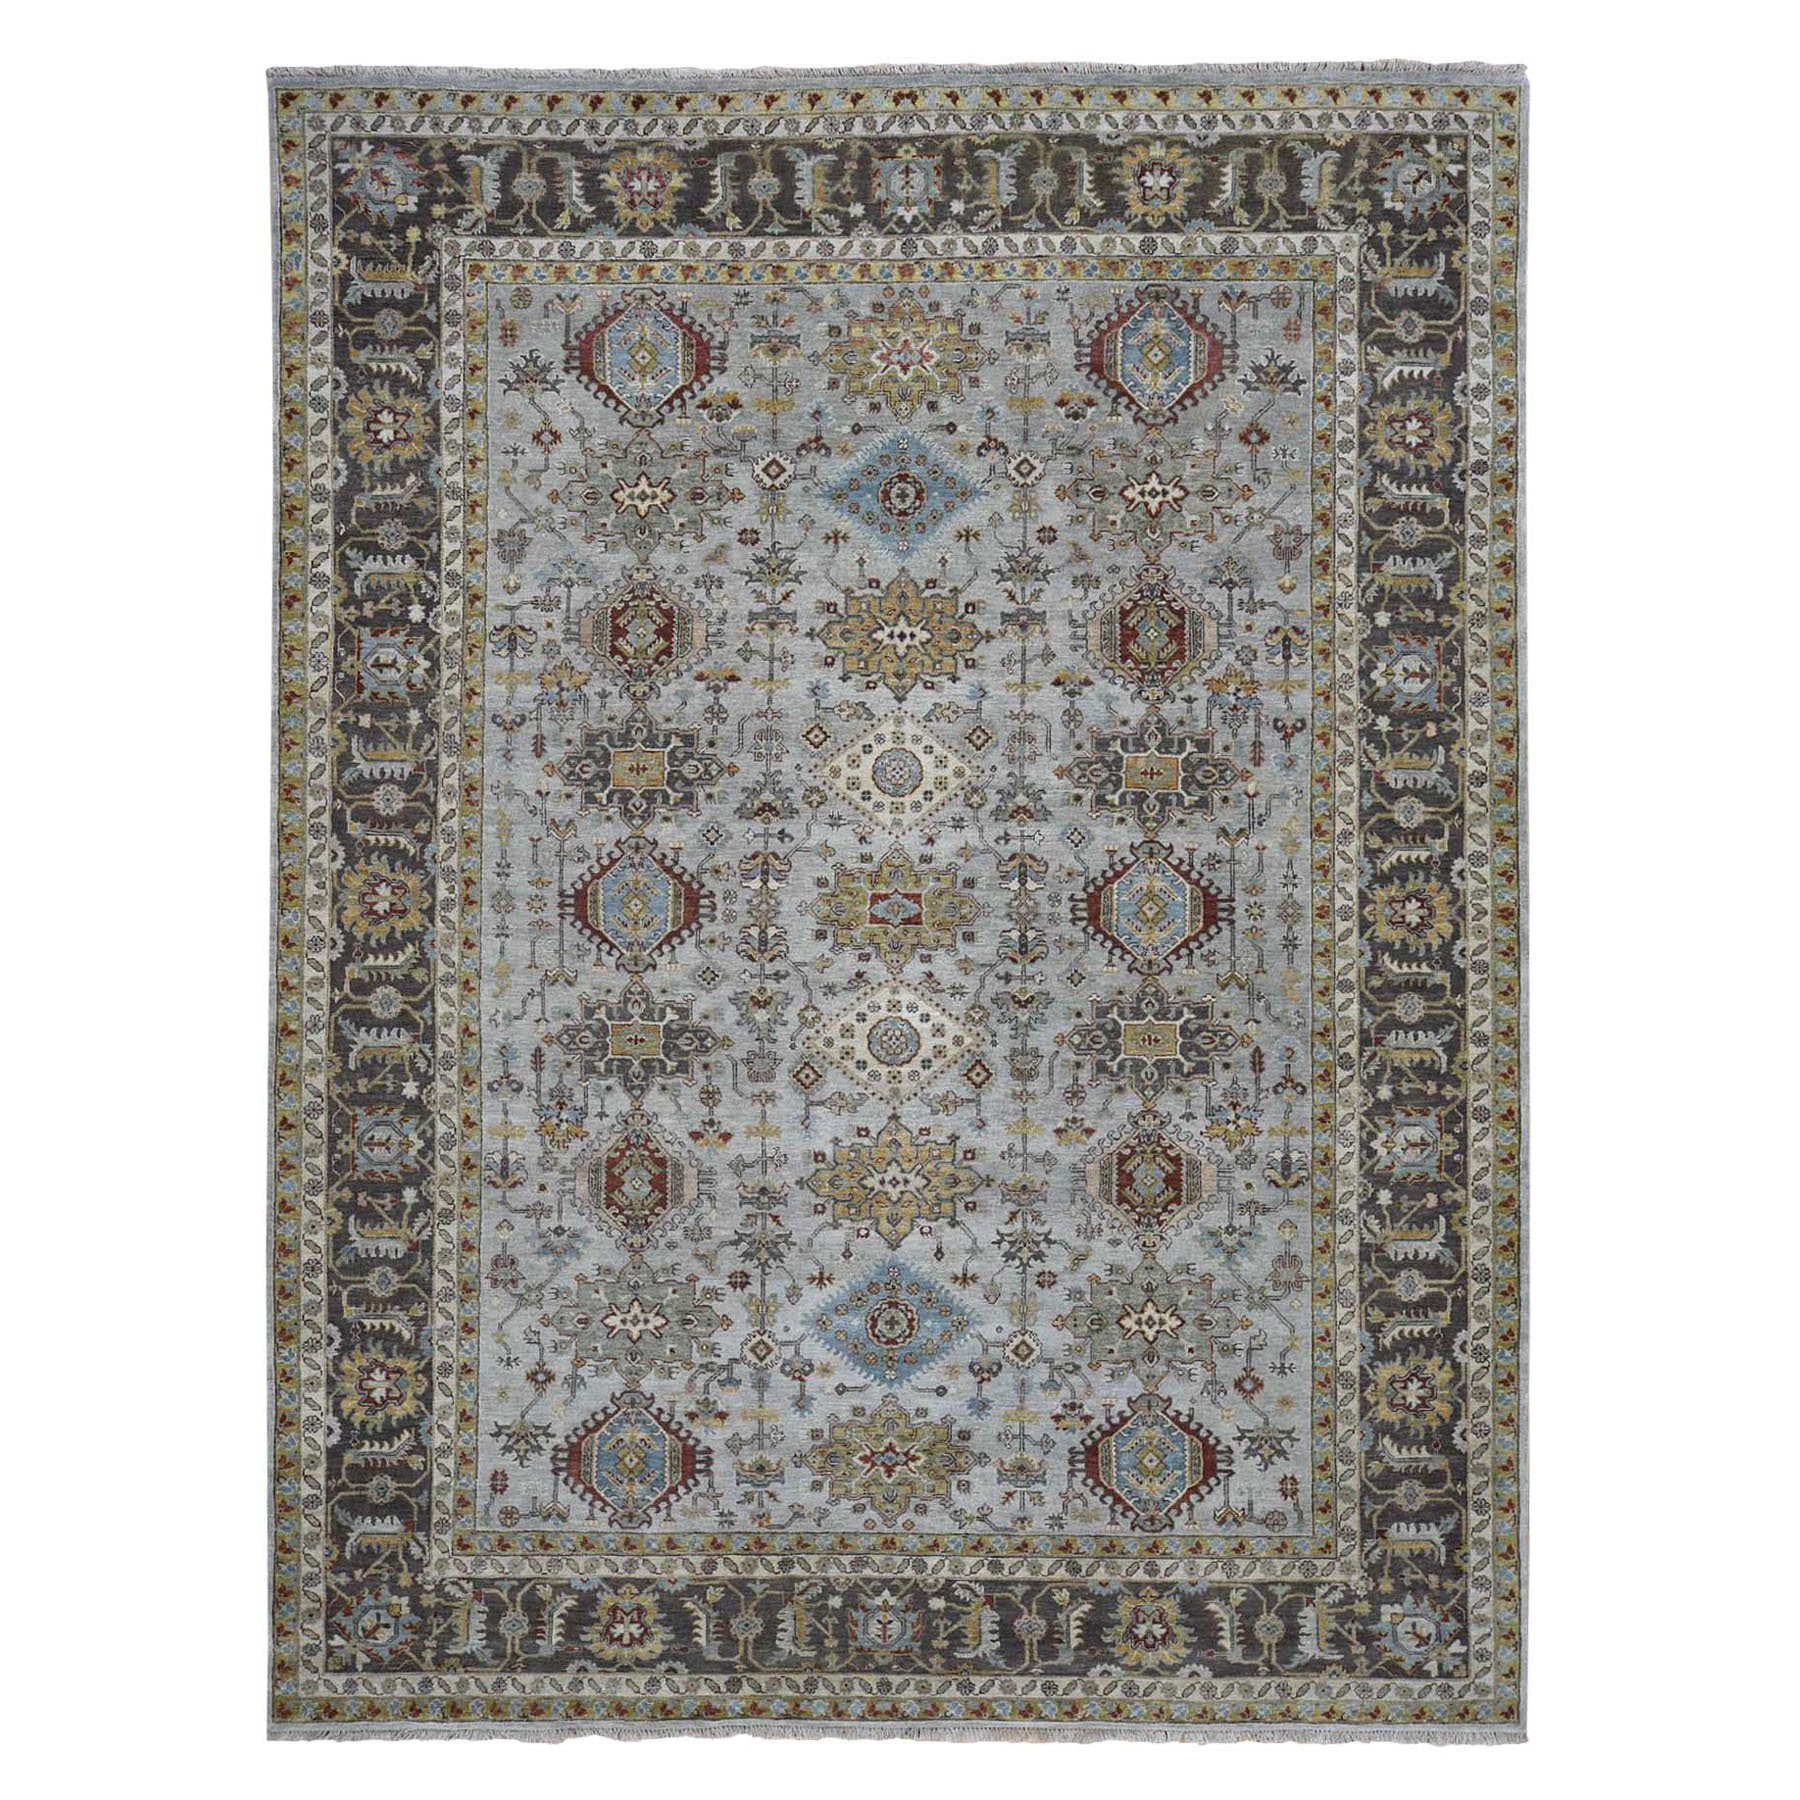 "9'1""X11'9"" Gray Karajeh Design Hand Knotted Pure Wool Oriental Rug moad7e99"